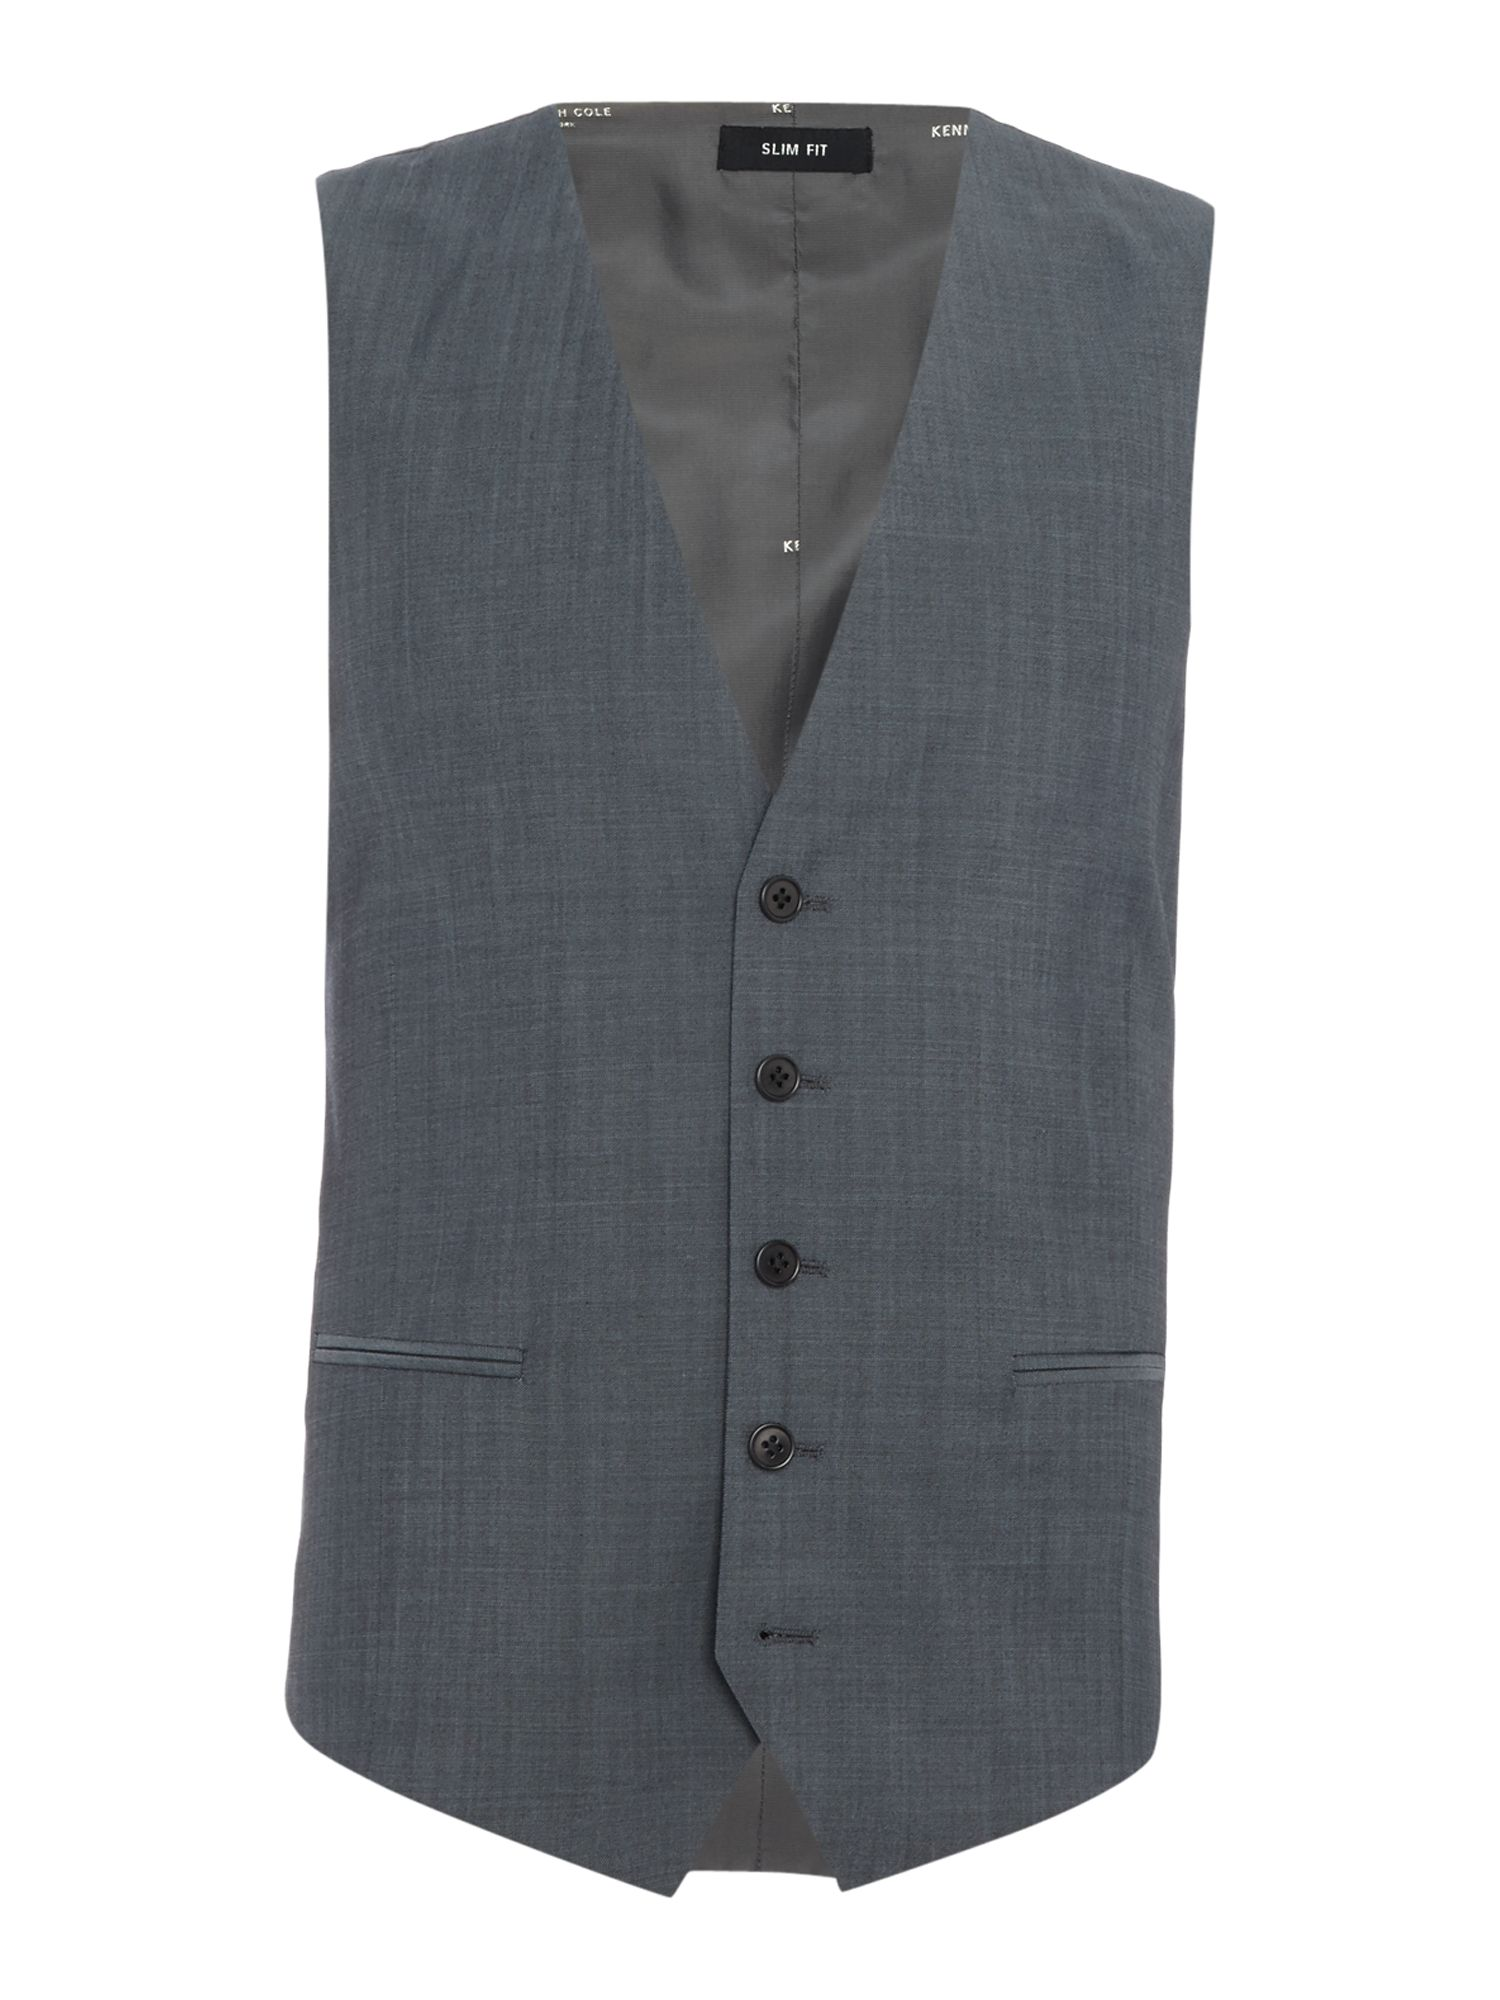 Men's Kenneth Cole Byram travel suit waistcoat, Grey